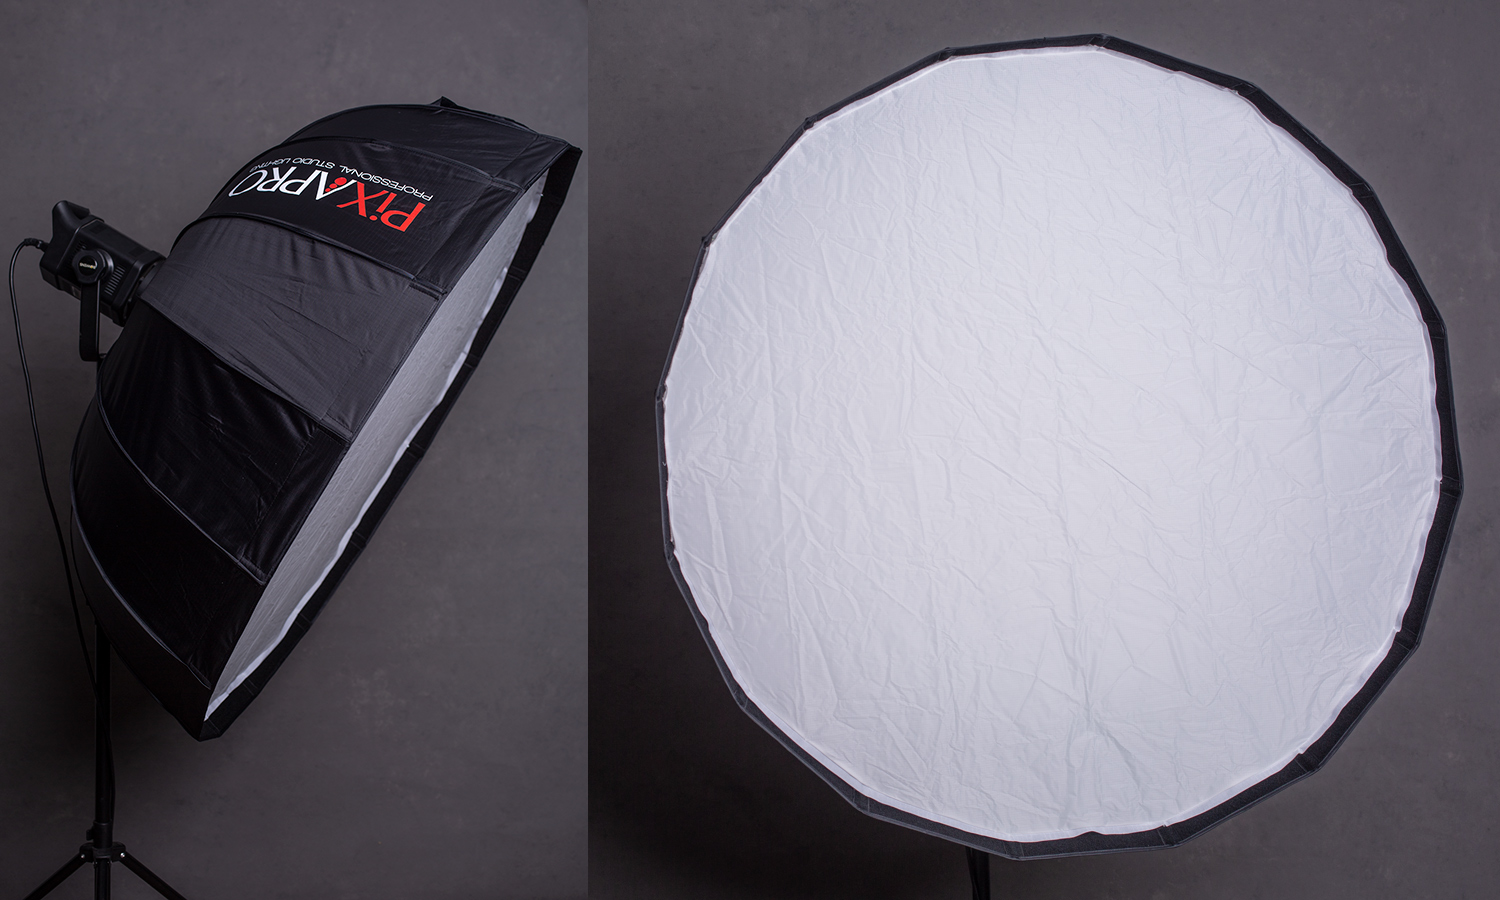 Image: The Rice Bowl is a large softbox with an unusual shape.